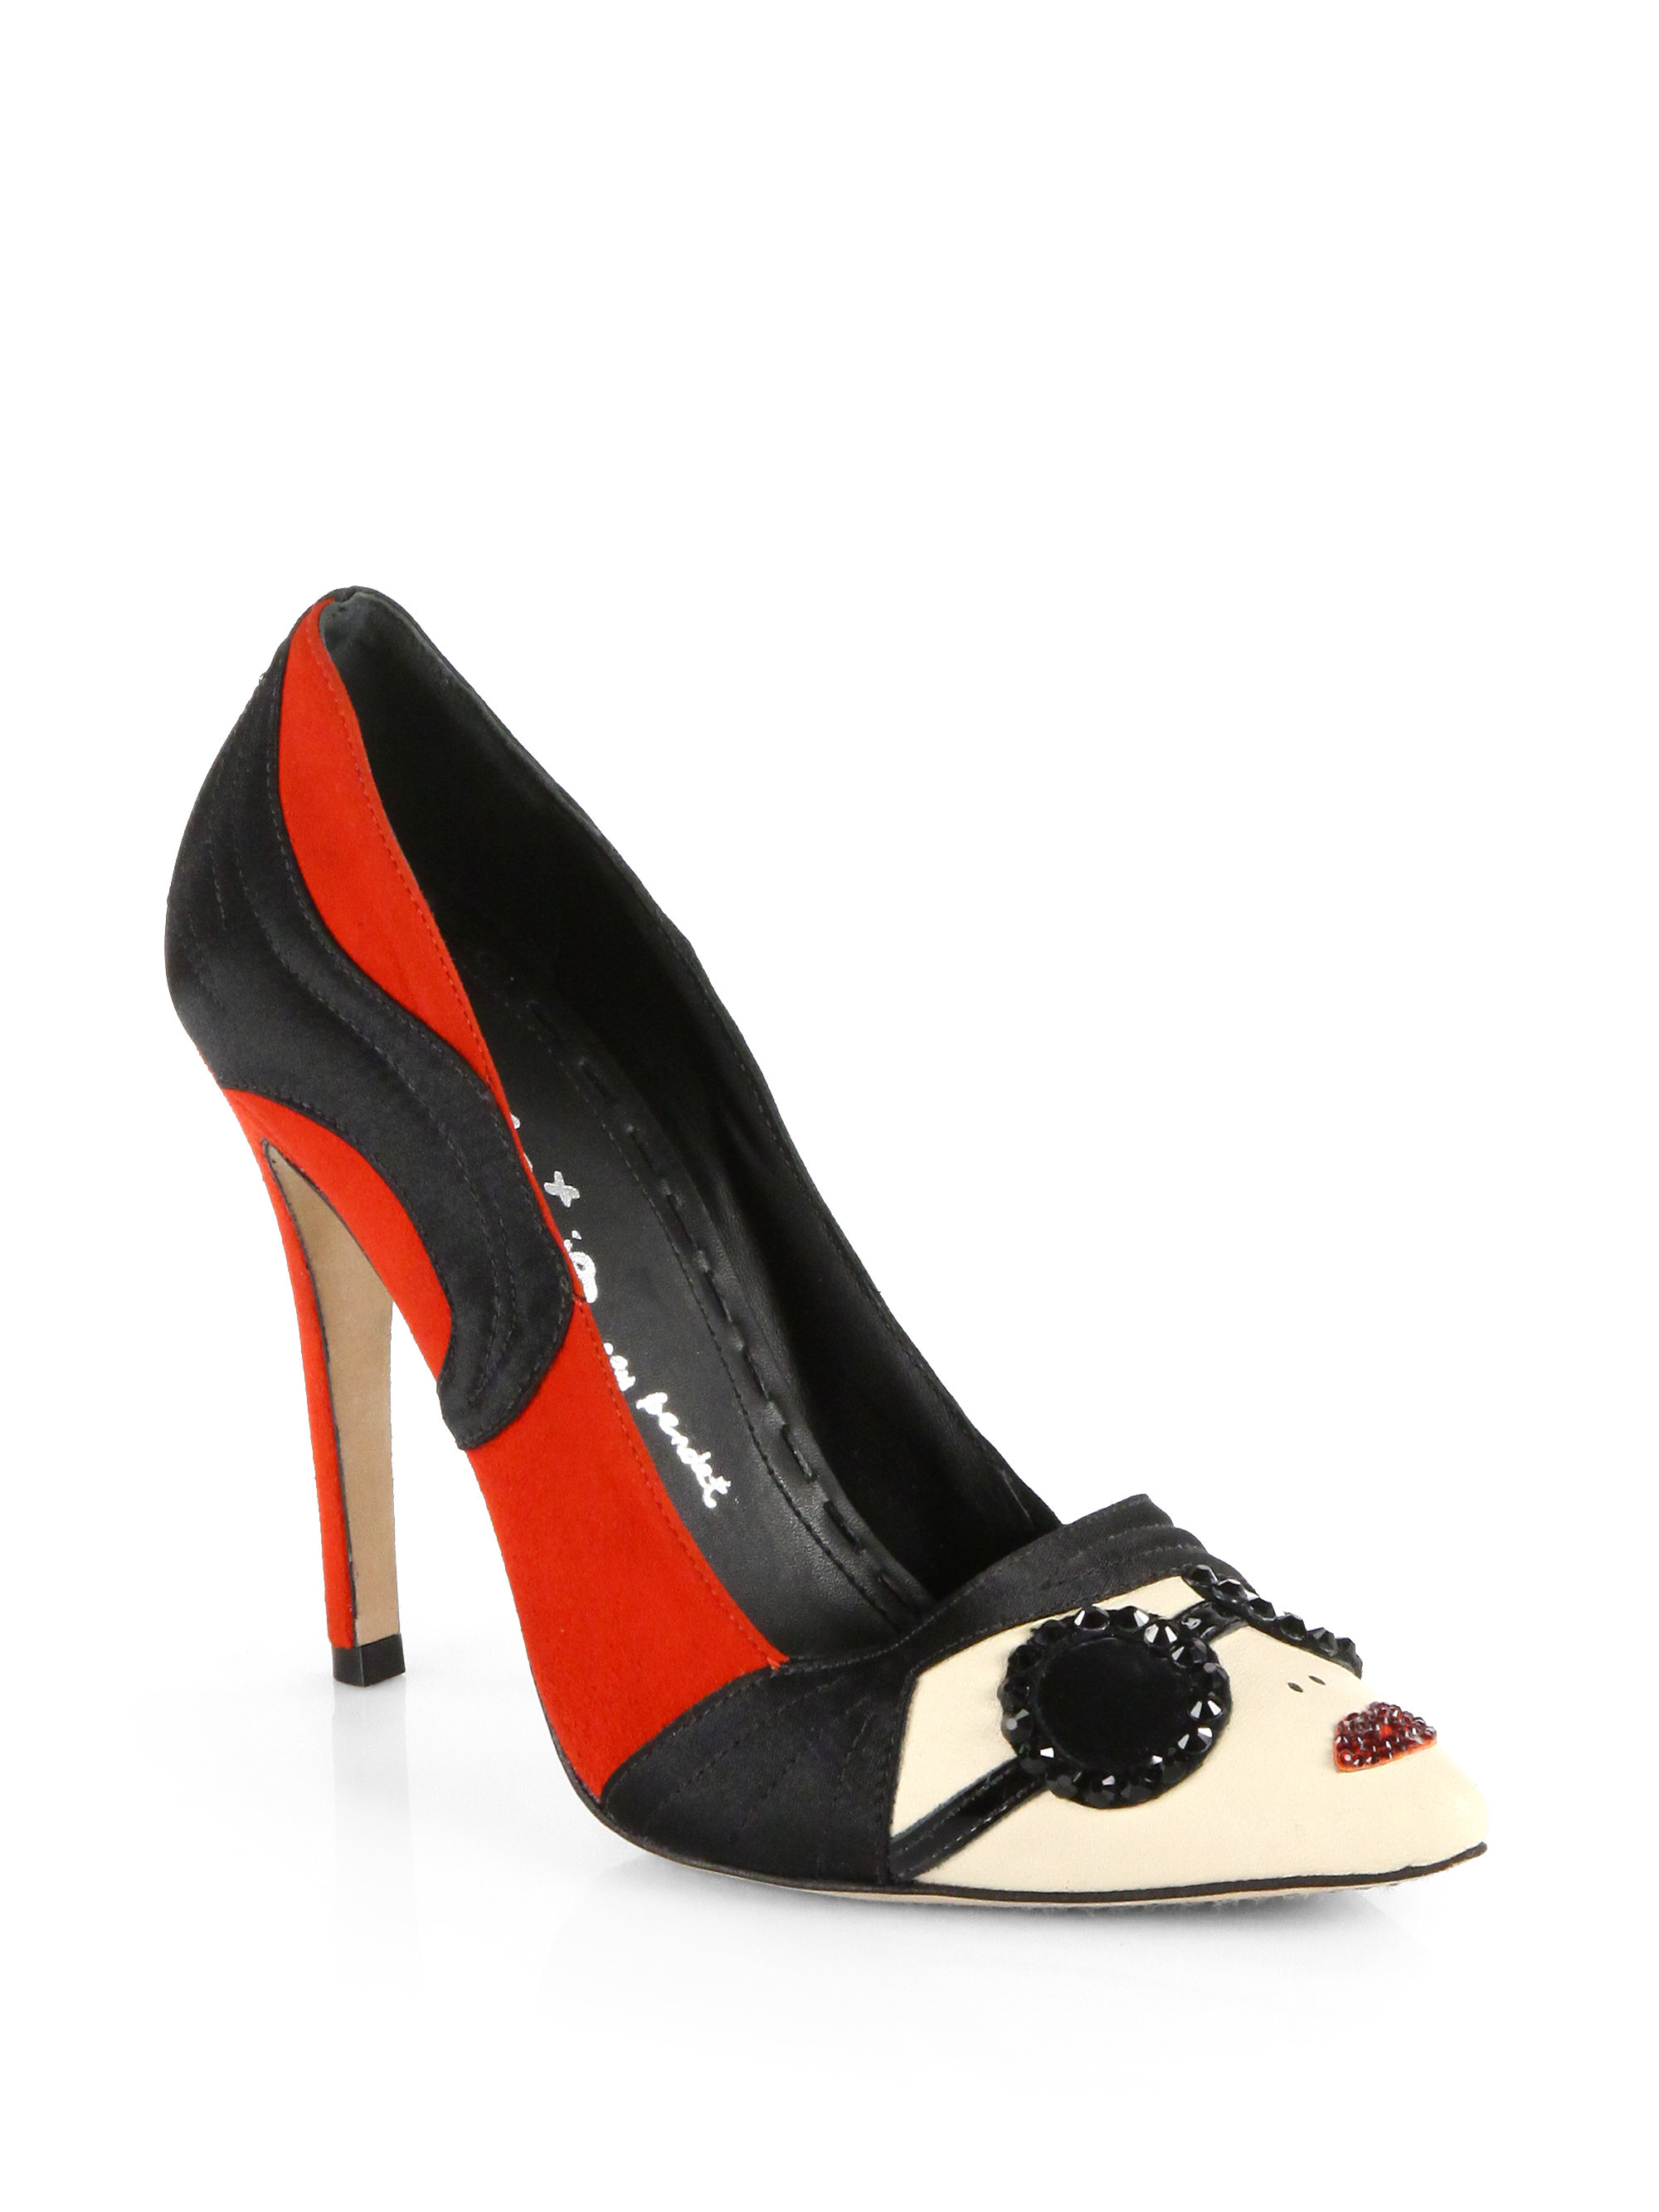 fdf853f27bf Lyst - Alice + Olivia Scarlet Sunglass Face Pumps in Black